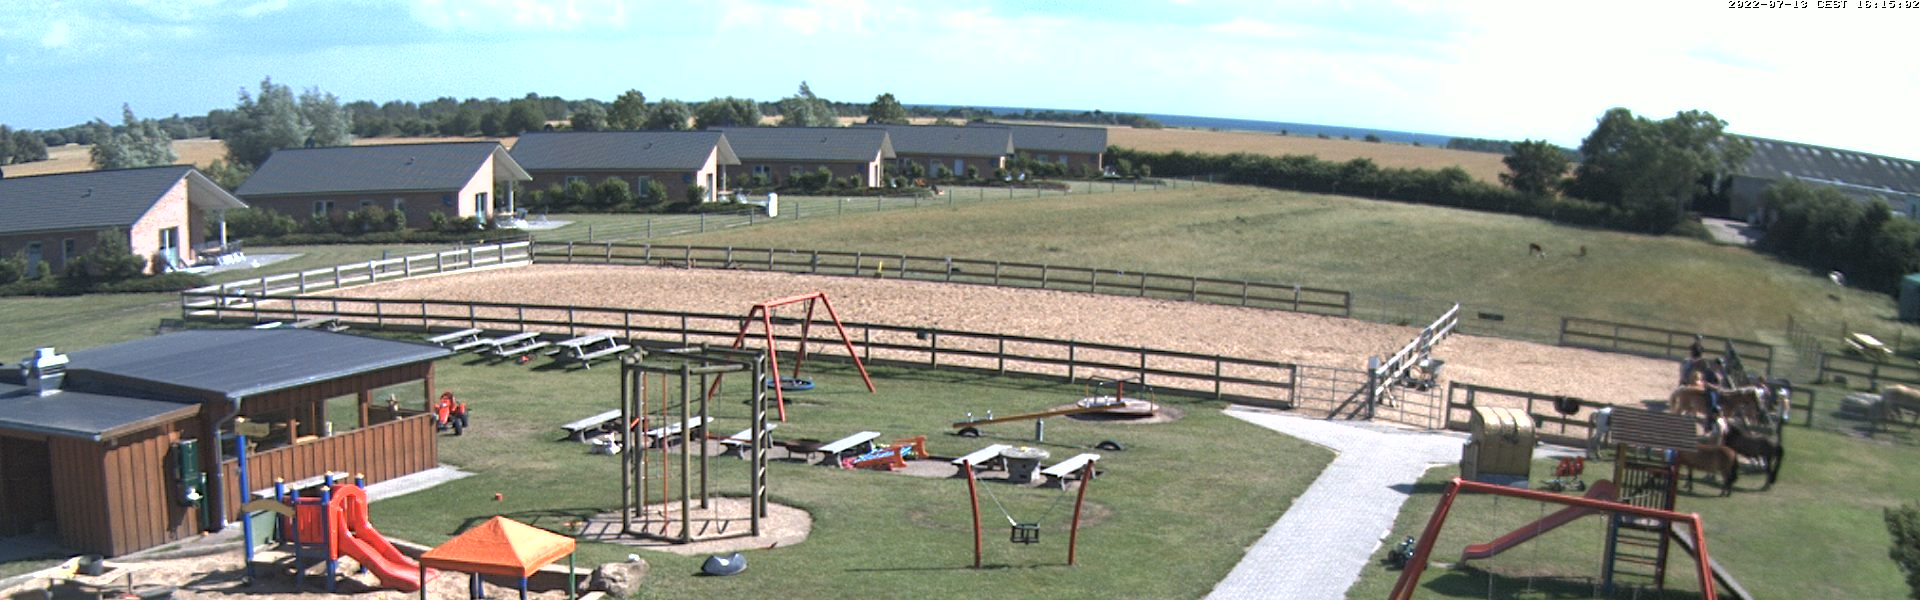 Büdlfarm Webcam